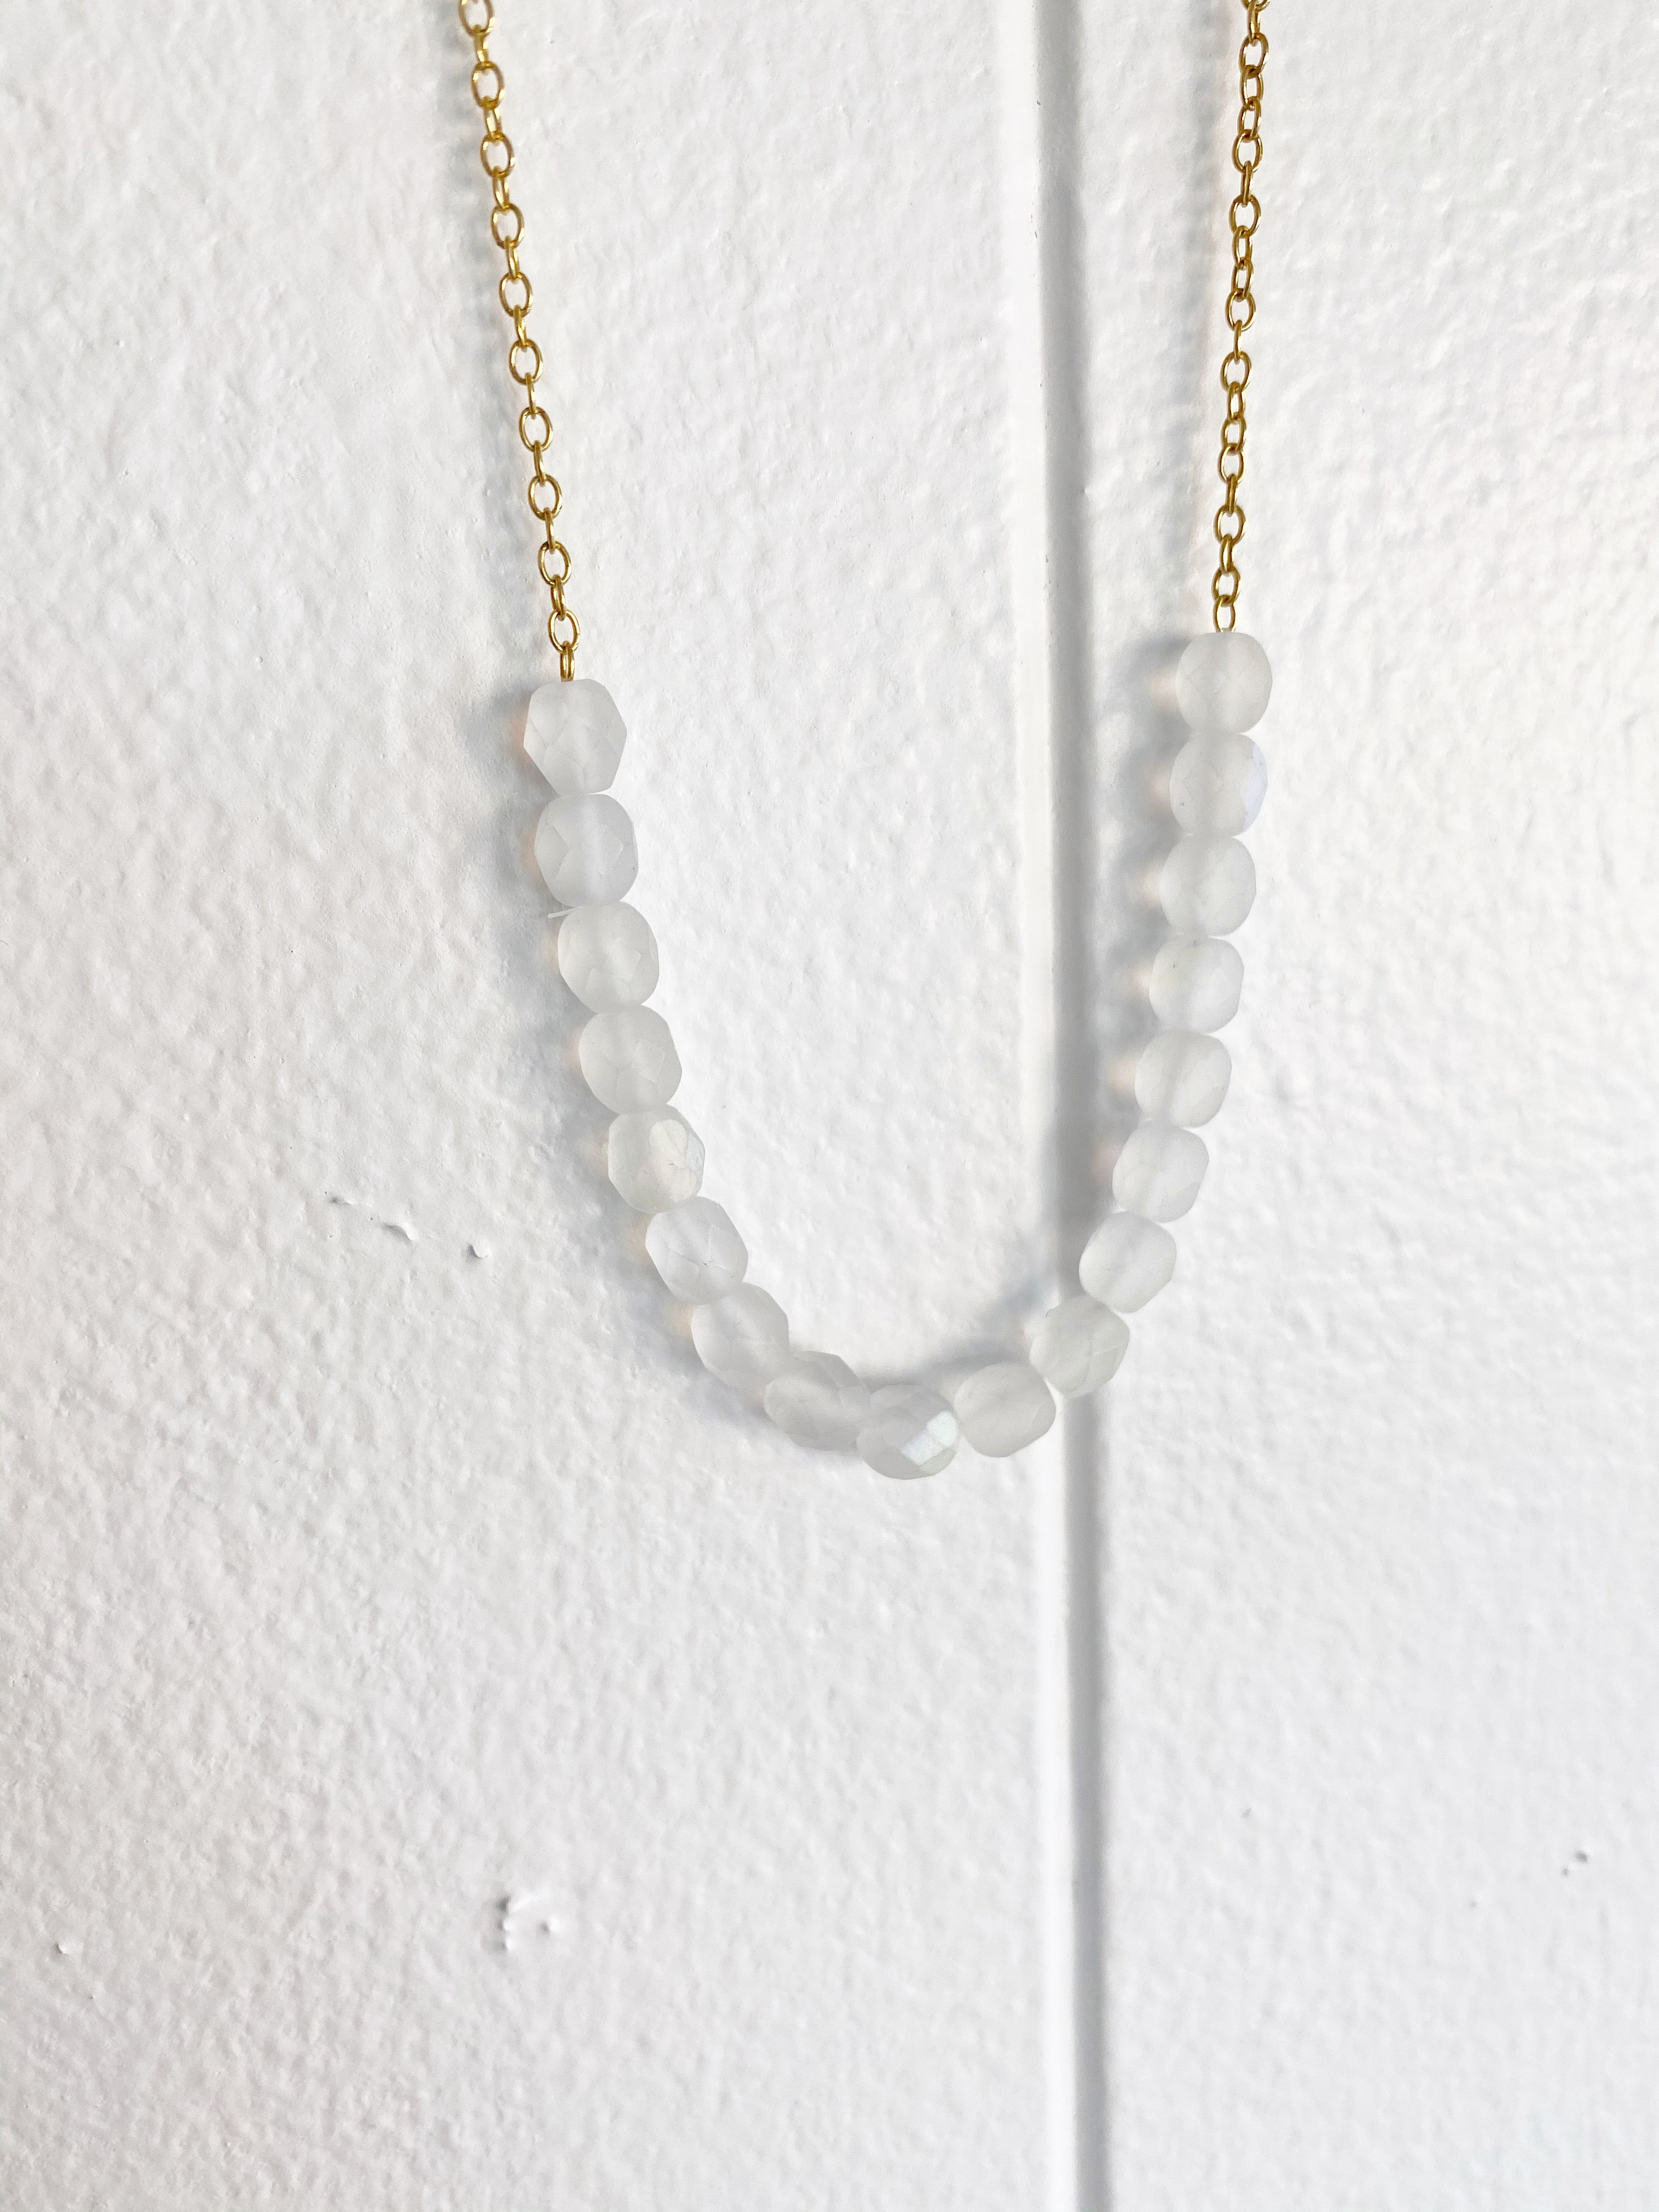 Geometric cloudy white beads make up focal point of gold chain link necklace